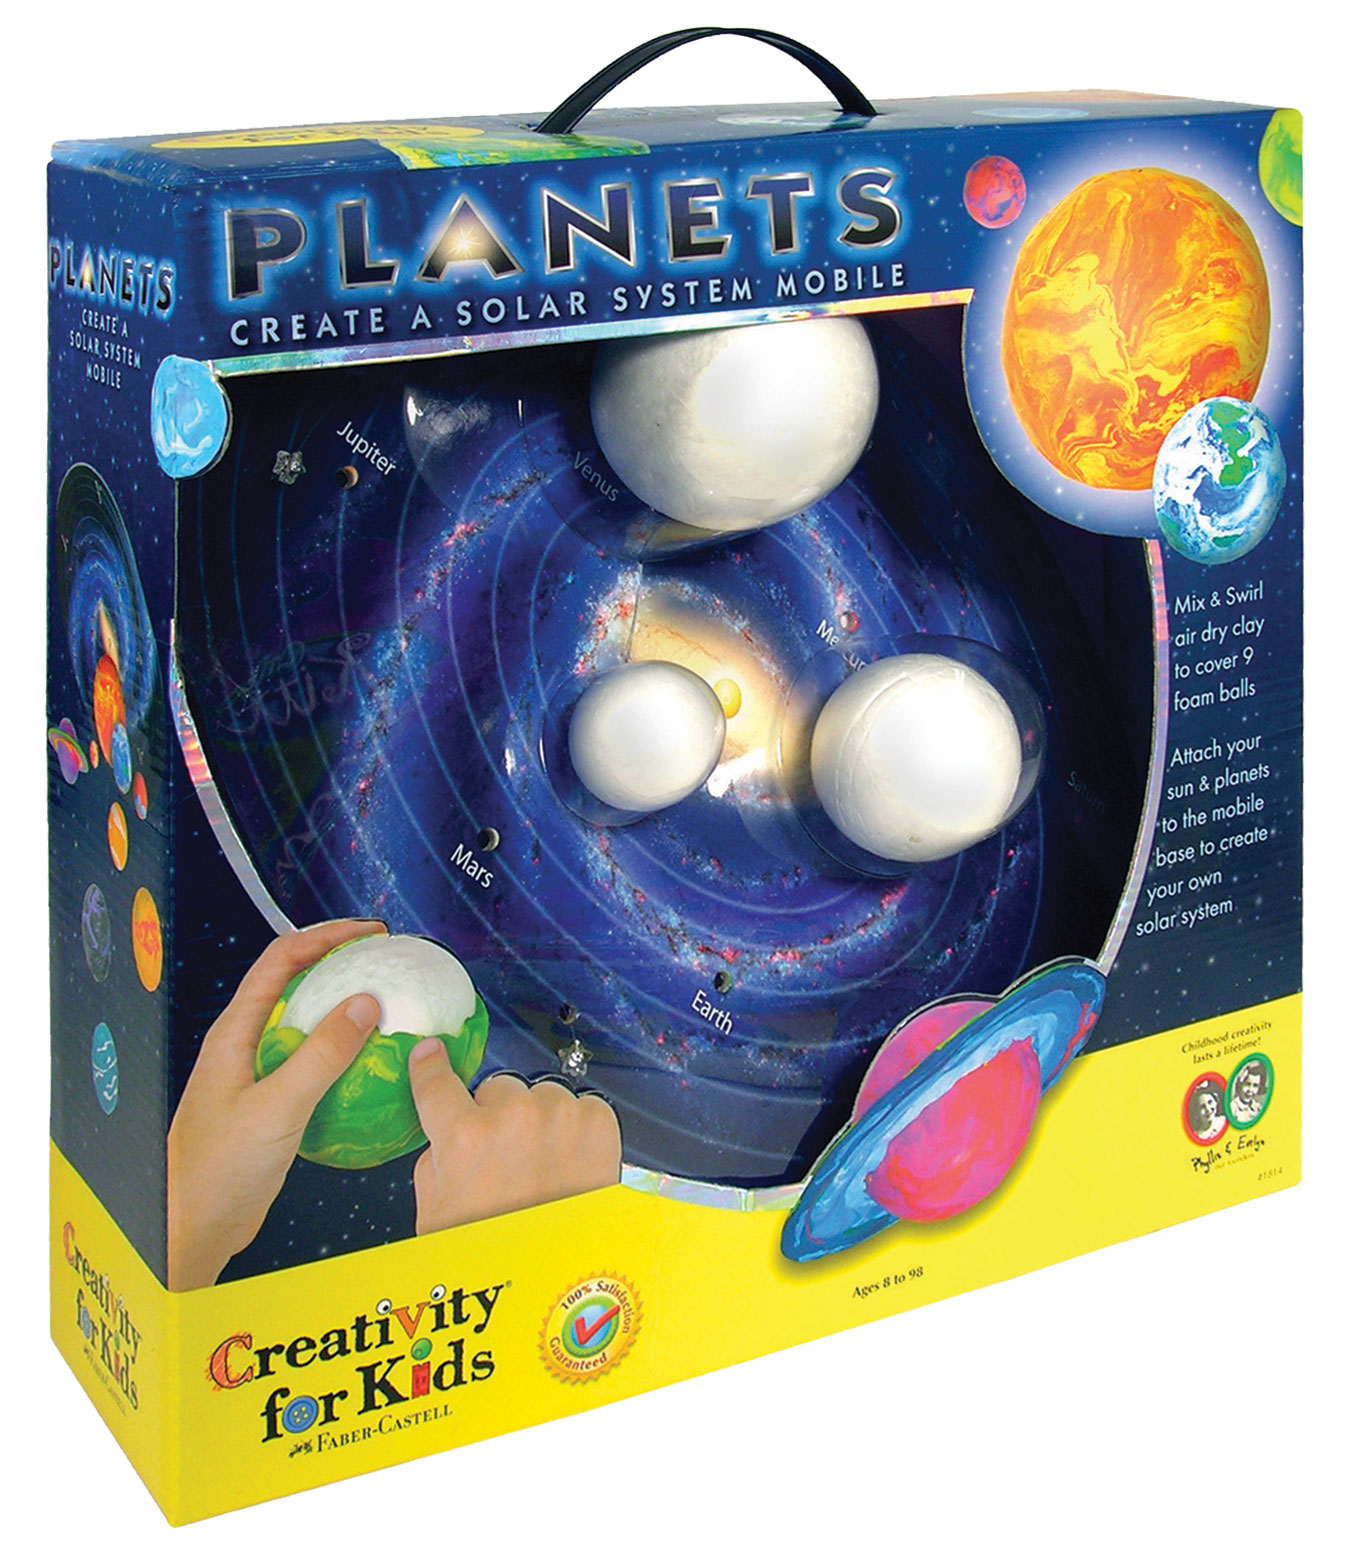 Toys As Tools Educational Toy Reviews: Review and Giveaway ...